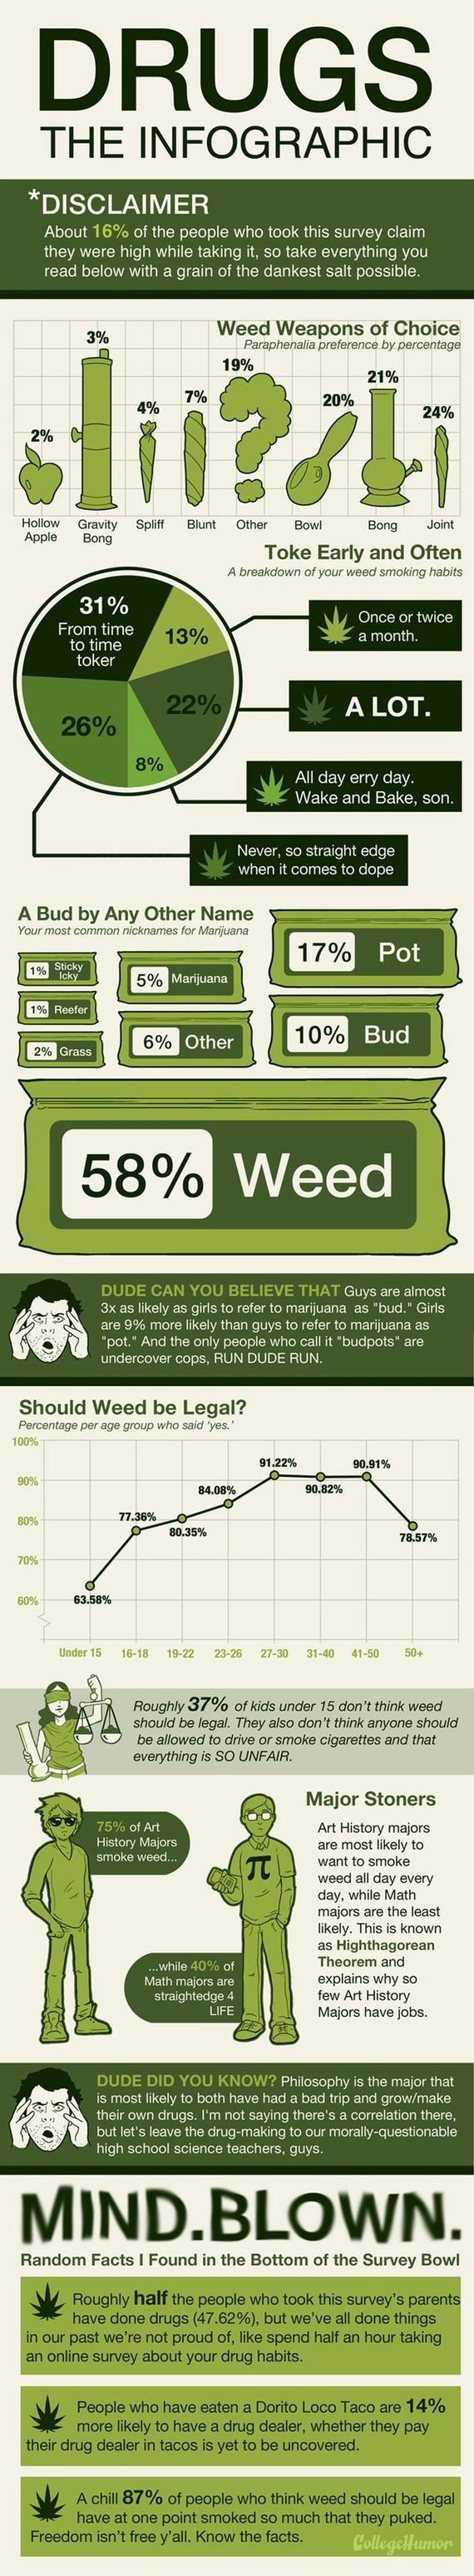 Facts About Weed (infographic)